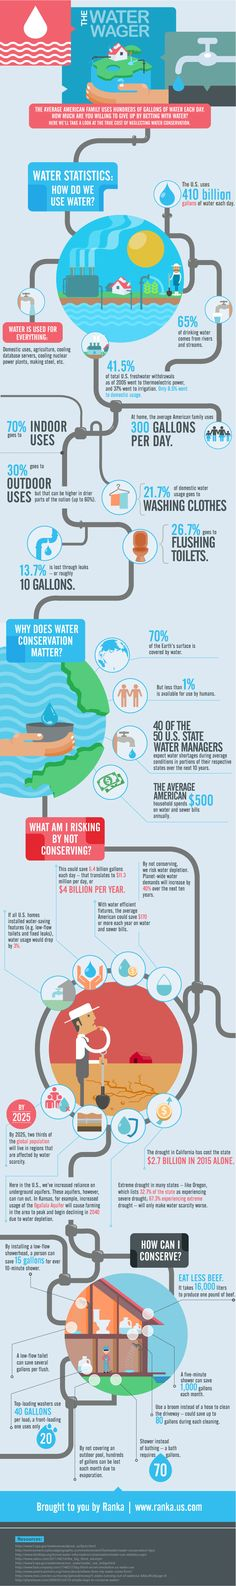 The Water Wager #Infographic #Environment #Water